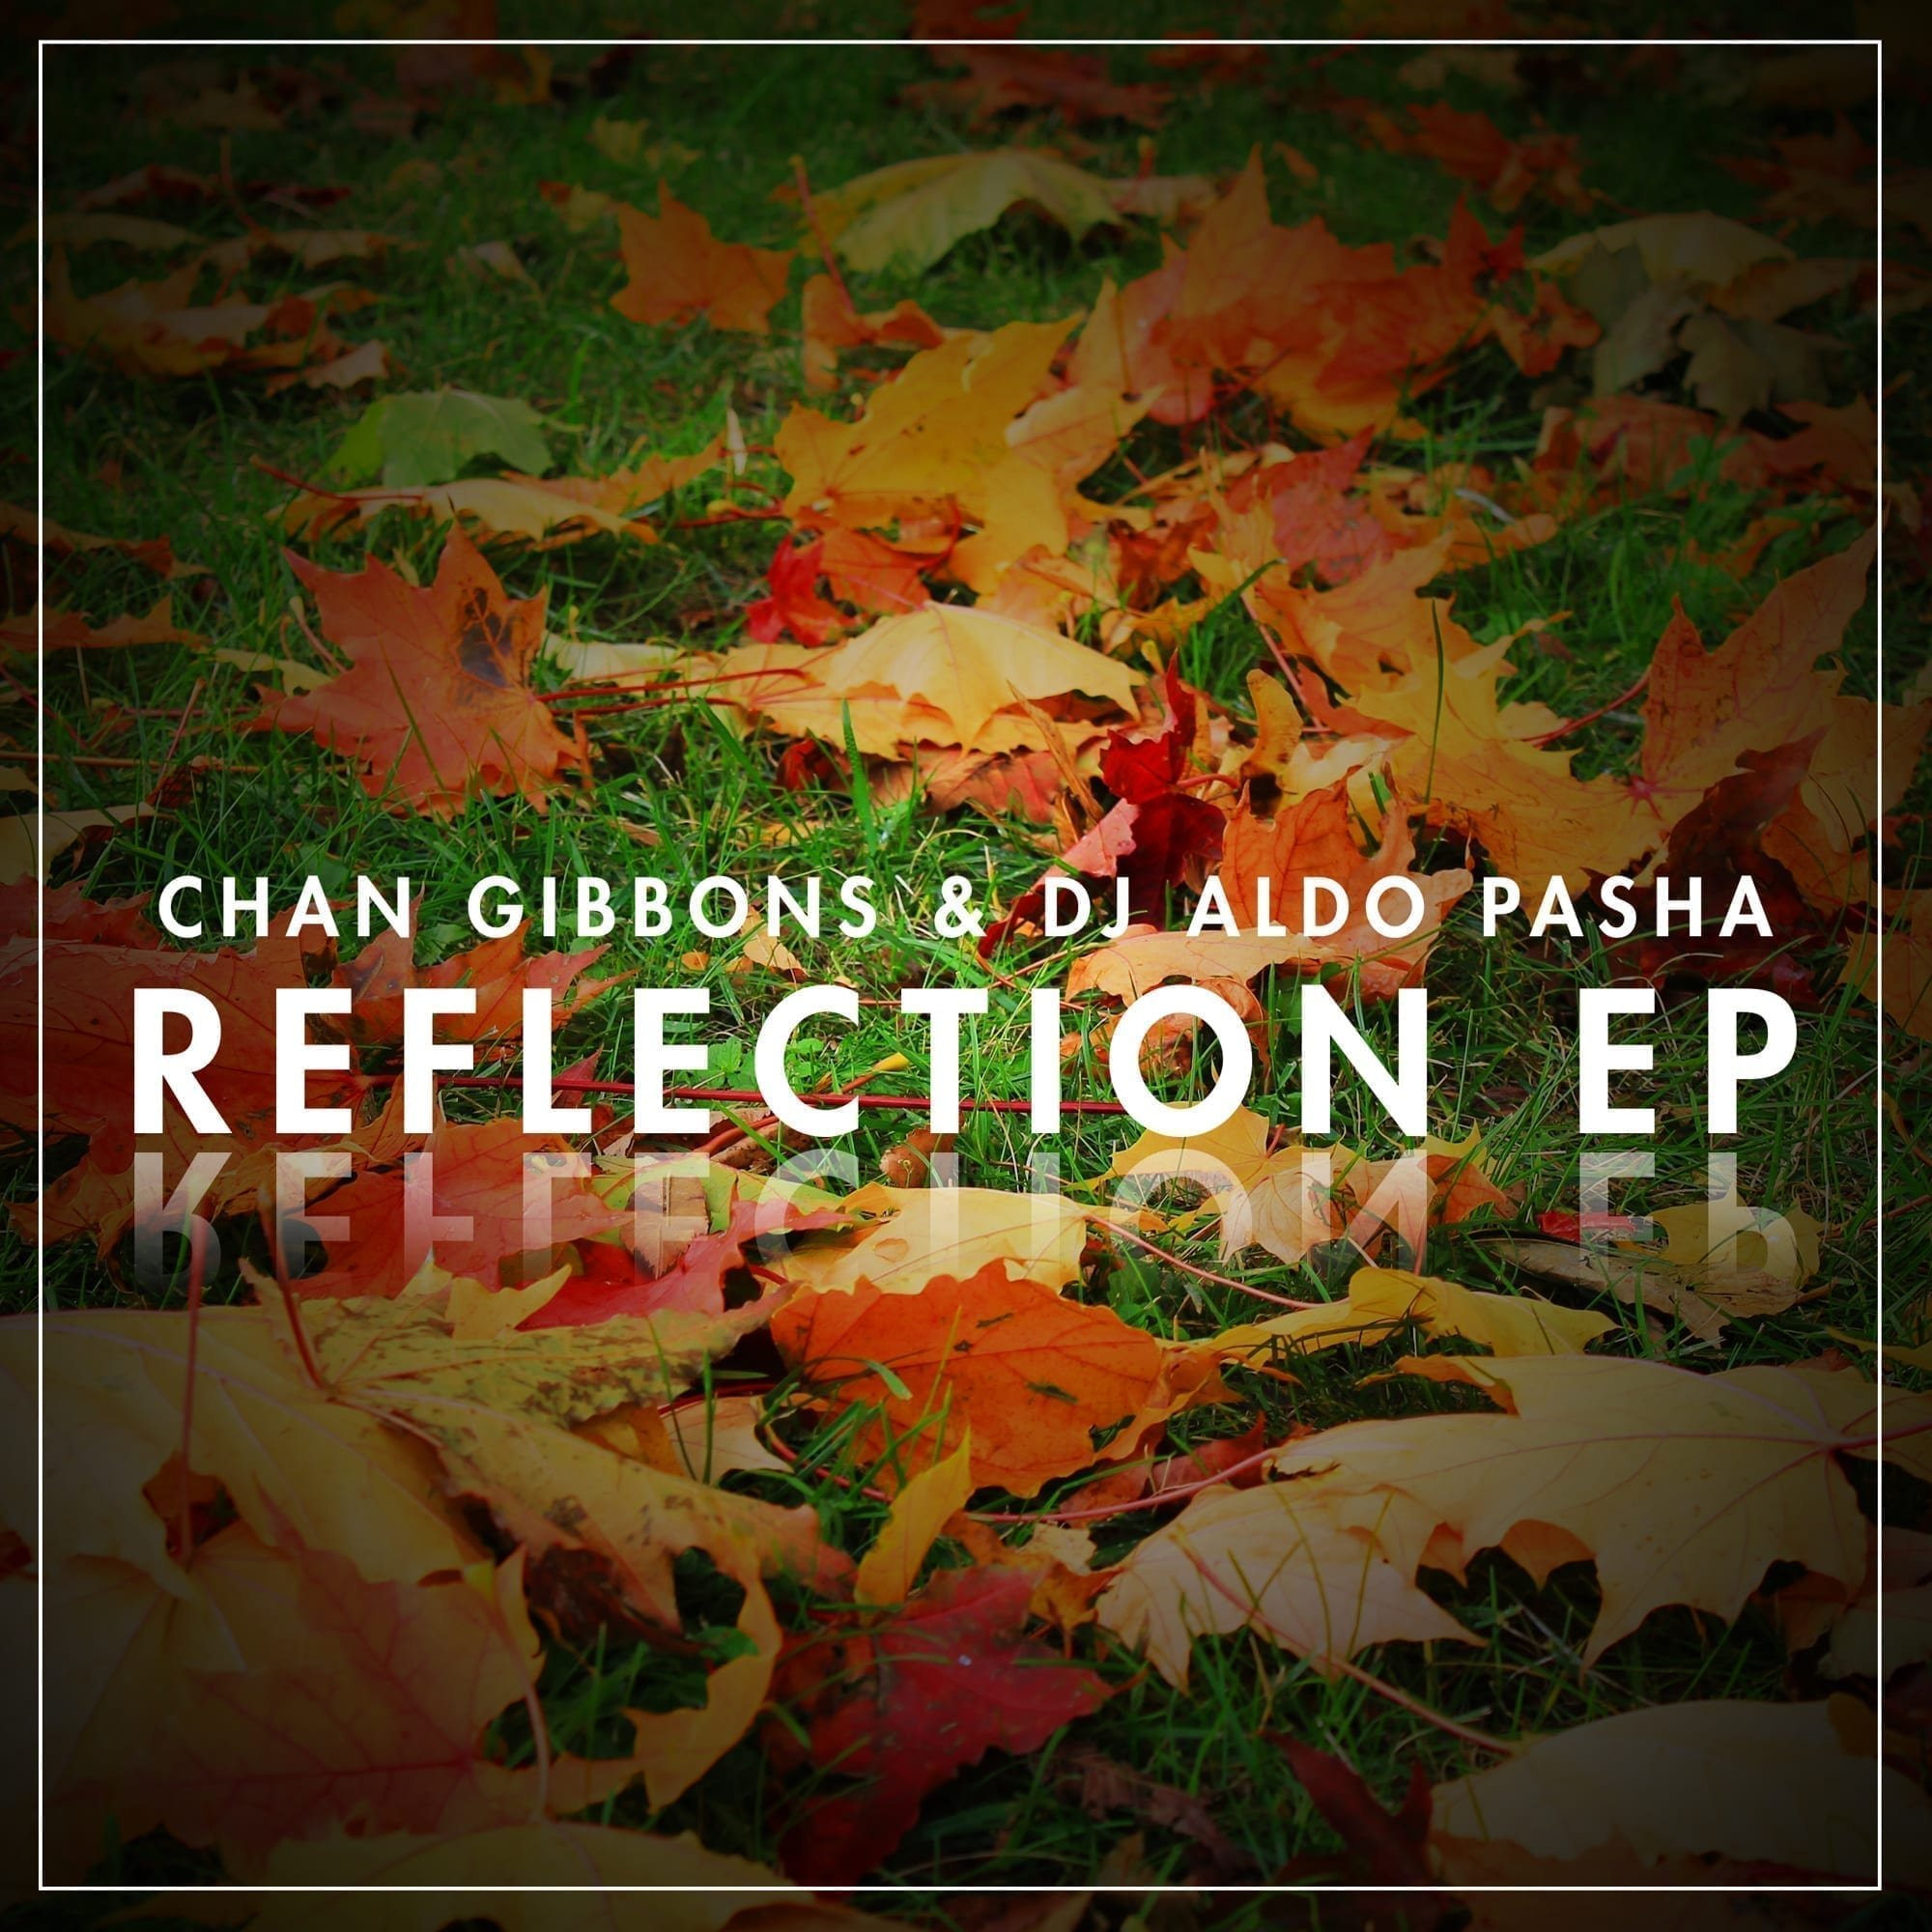 London based producers, Chan Gibbons & DJ Aldo Pasha return with their new EP 'Reflection'